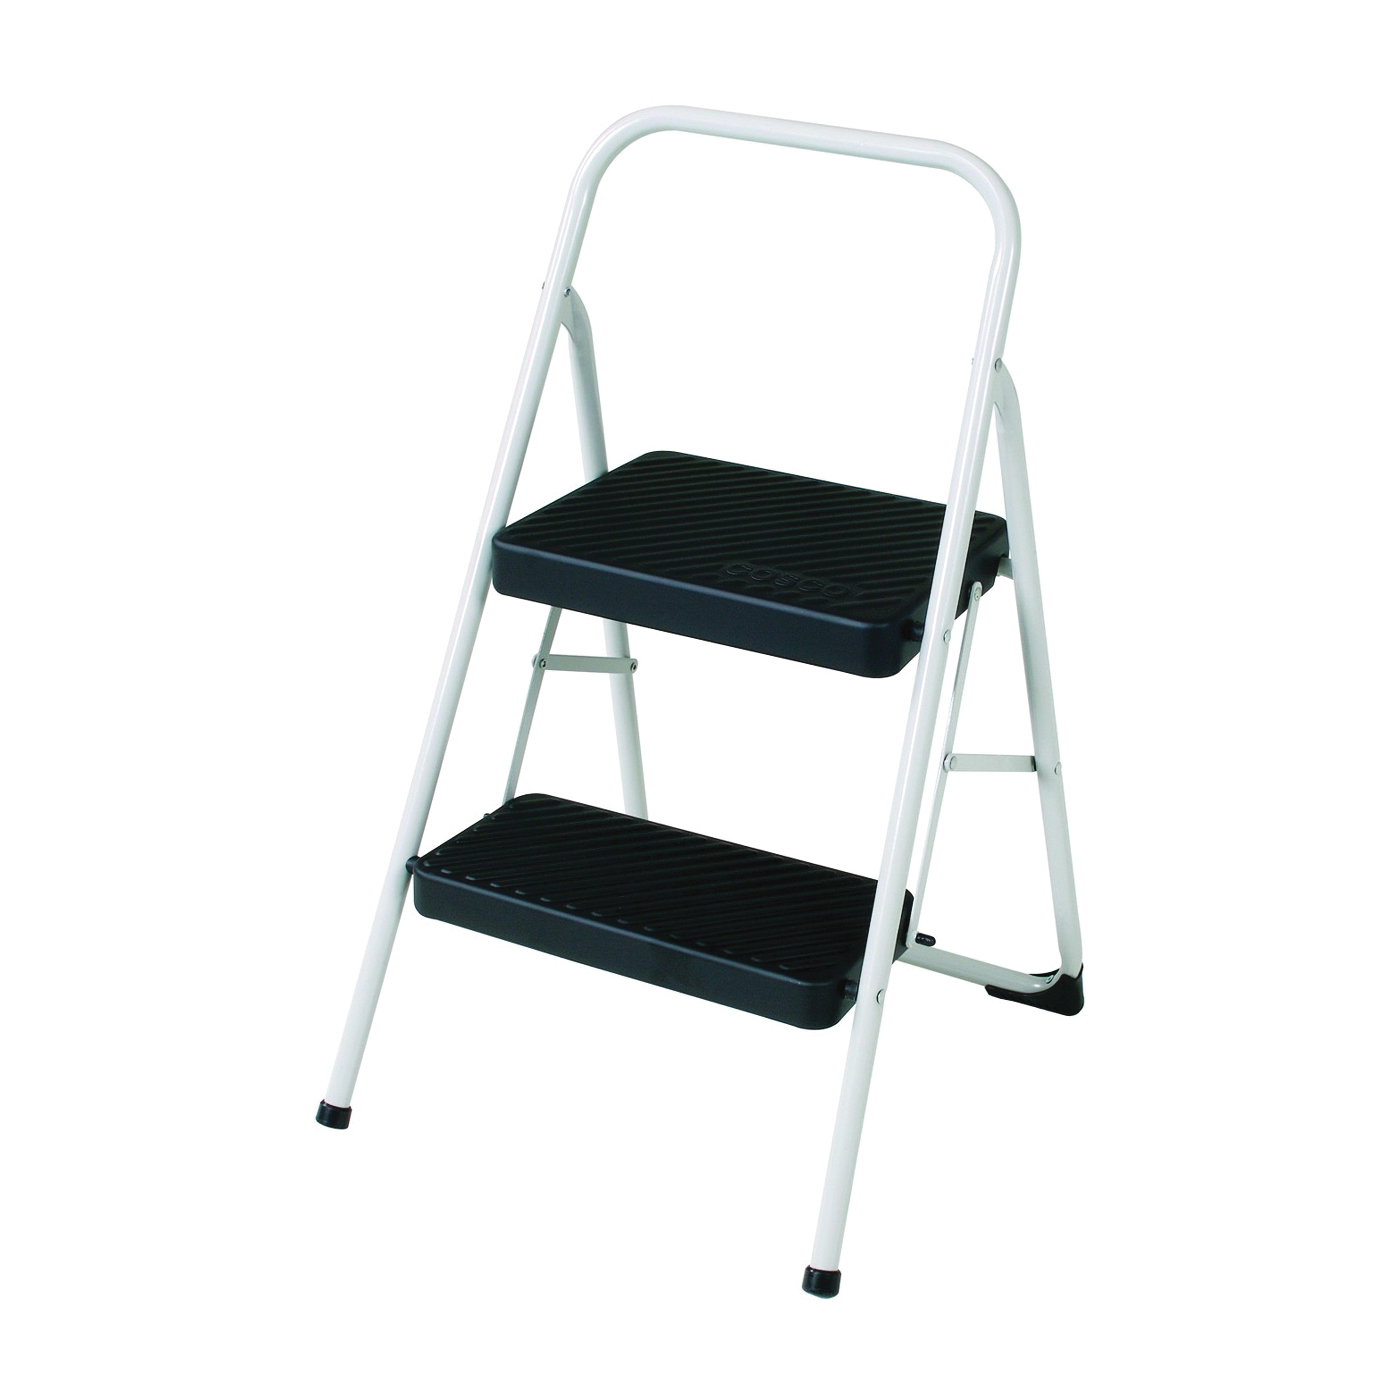 Picture of Cosco 11135CLGG4 Folding Step Stool, 28.15 in H, 200 lb, Steel, Black